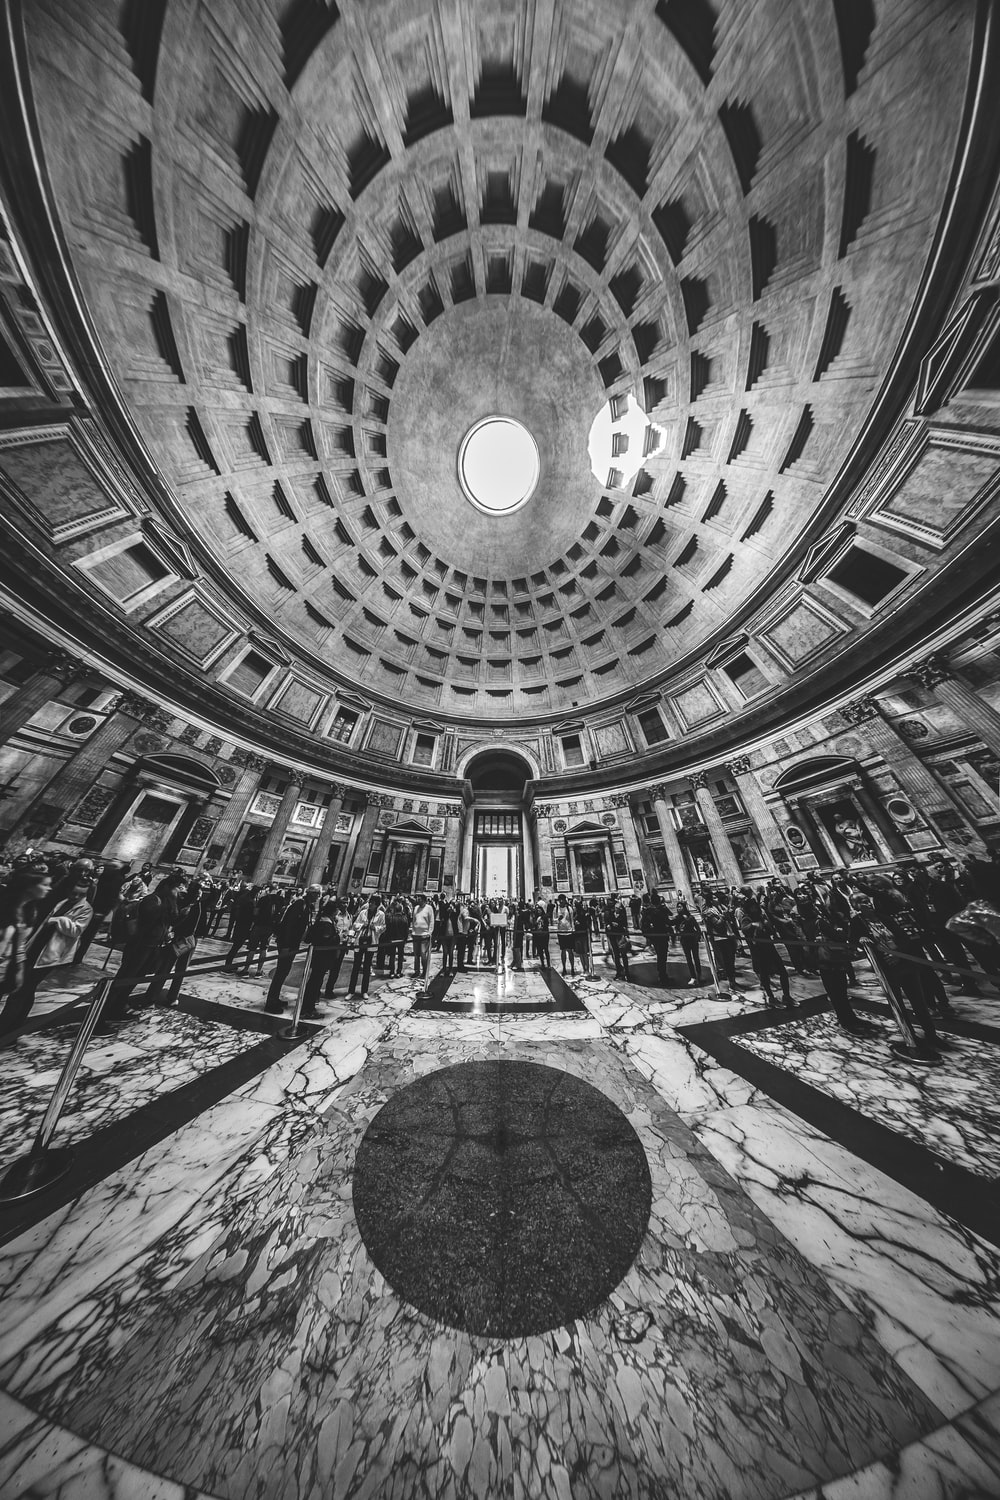 grayscale photography of people inside Pantheon temple in Rome, Italy